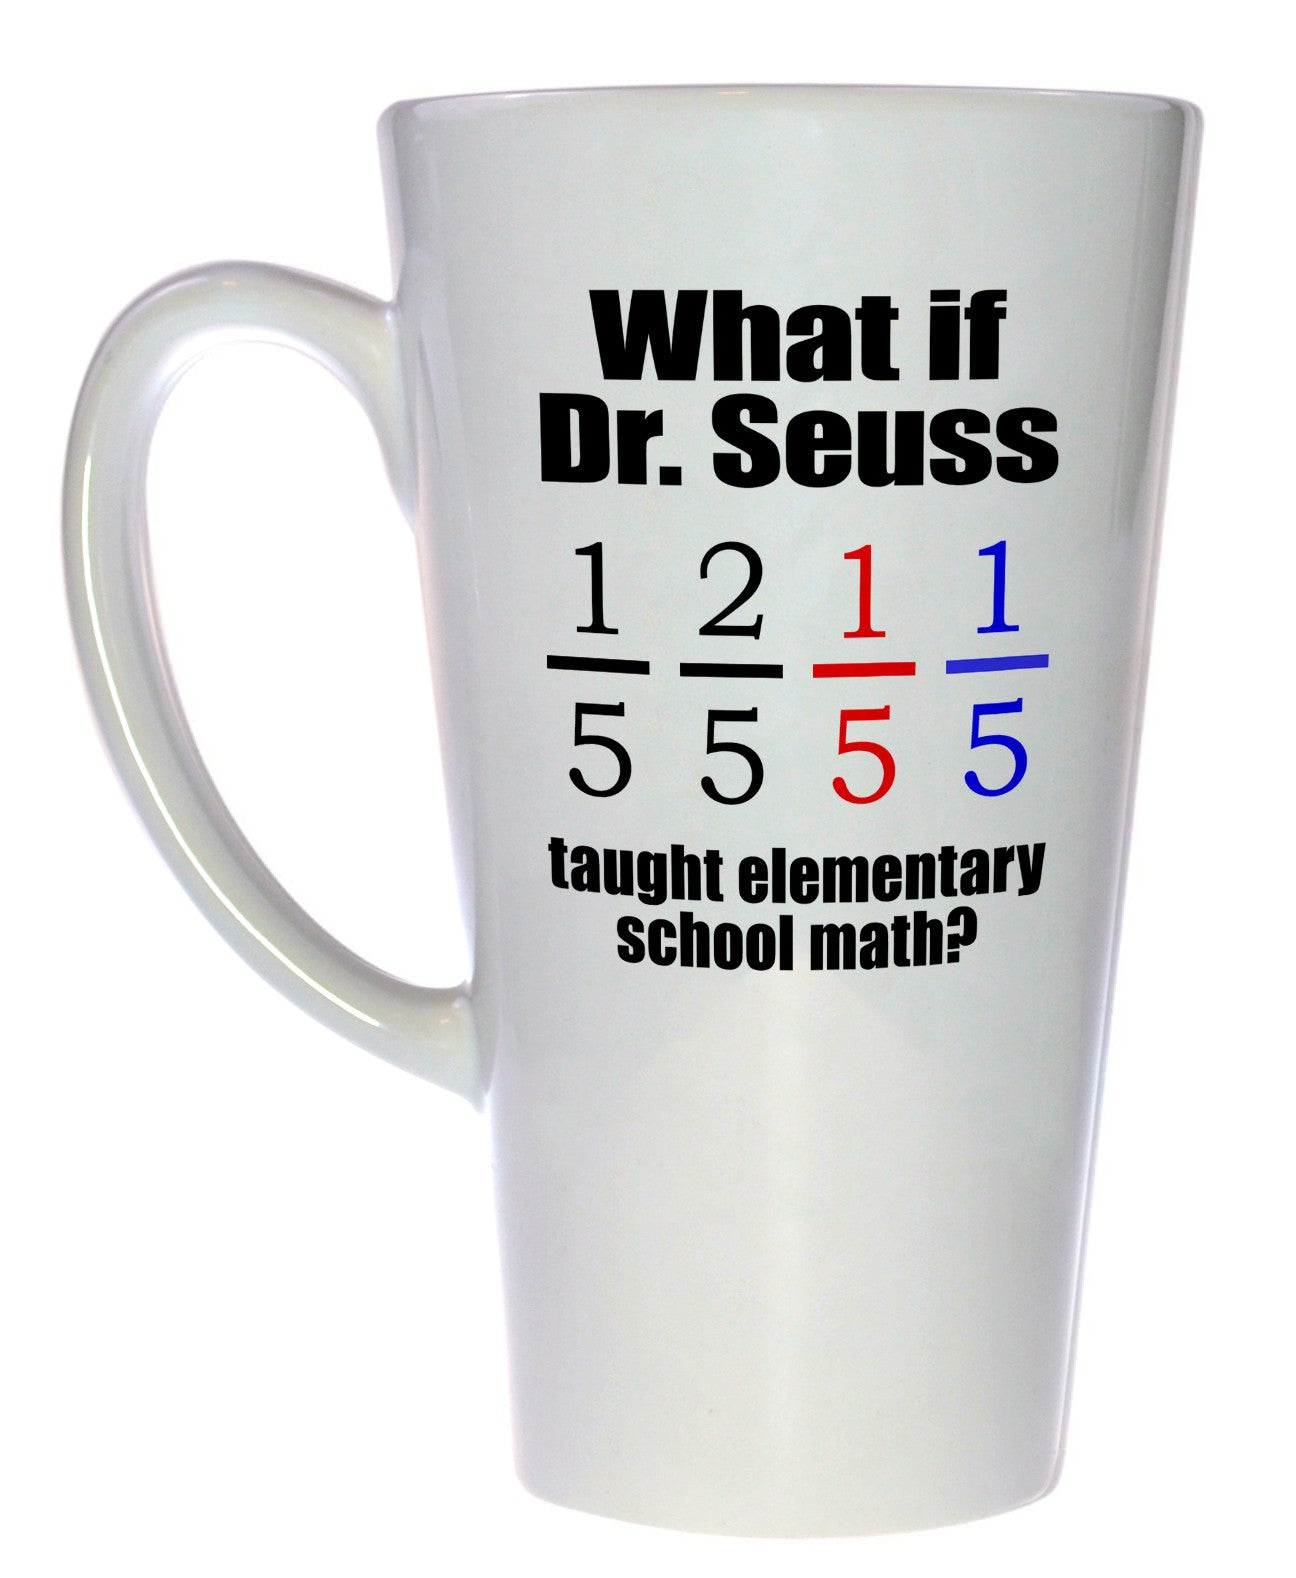 Dr Seuss as a Math Teacher Coffee or Tea mug Latte Size – Neurons